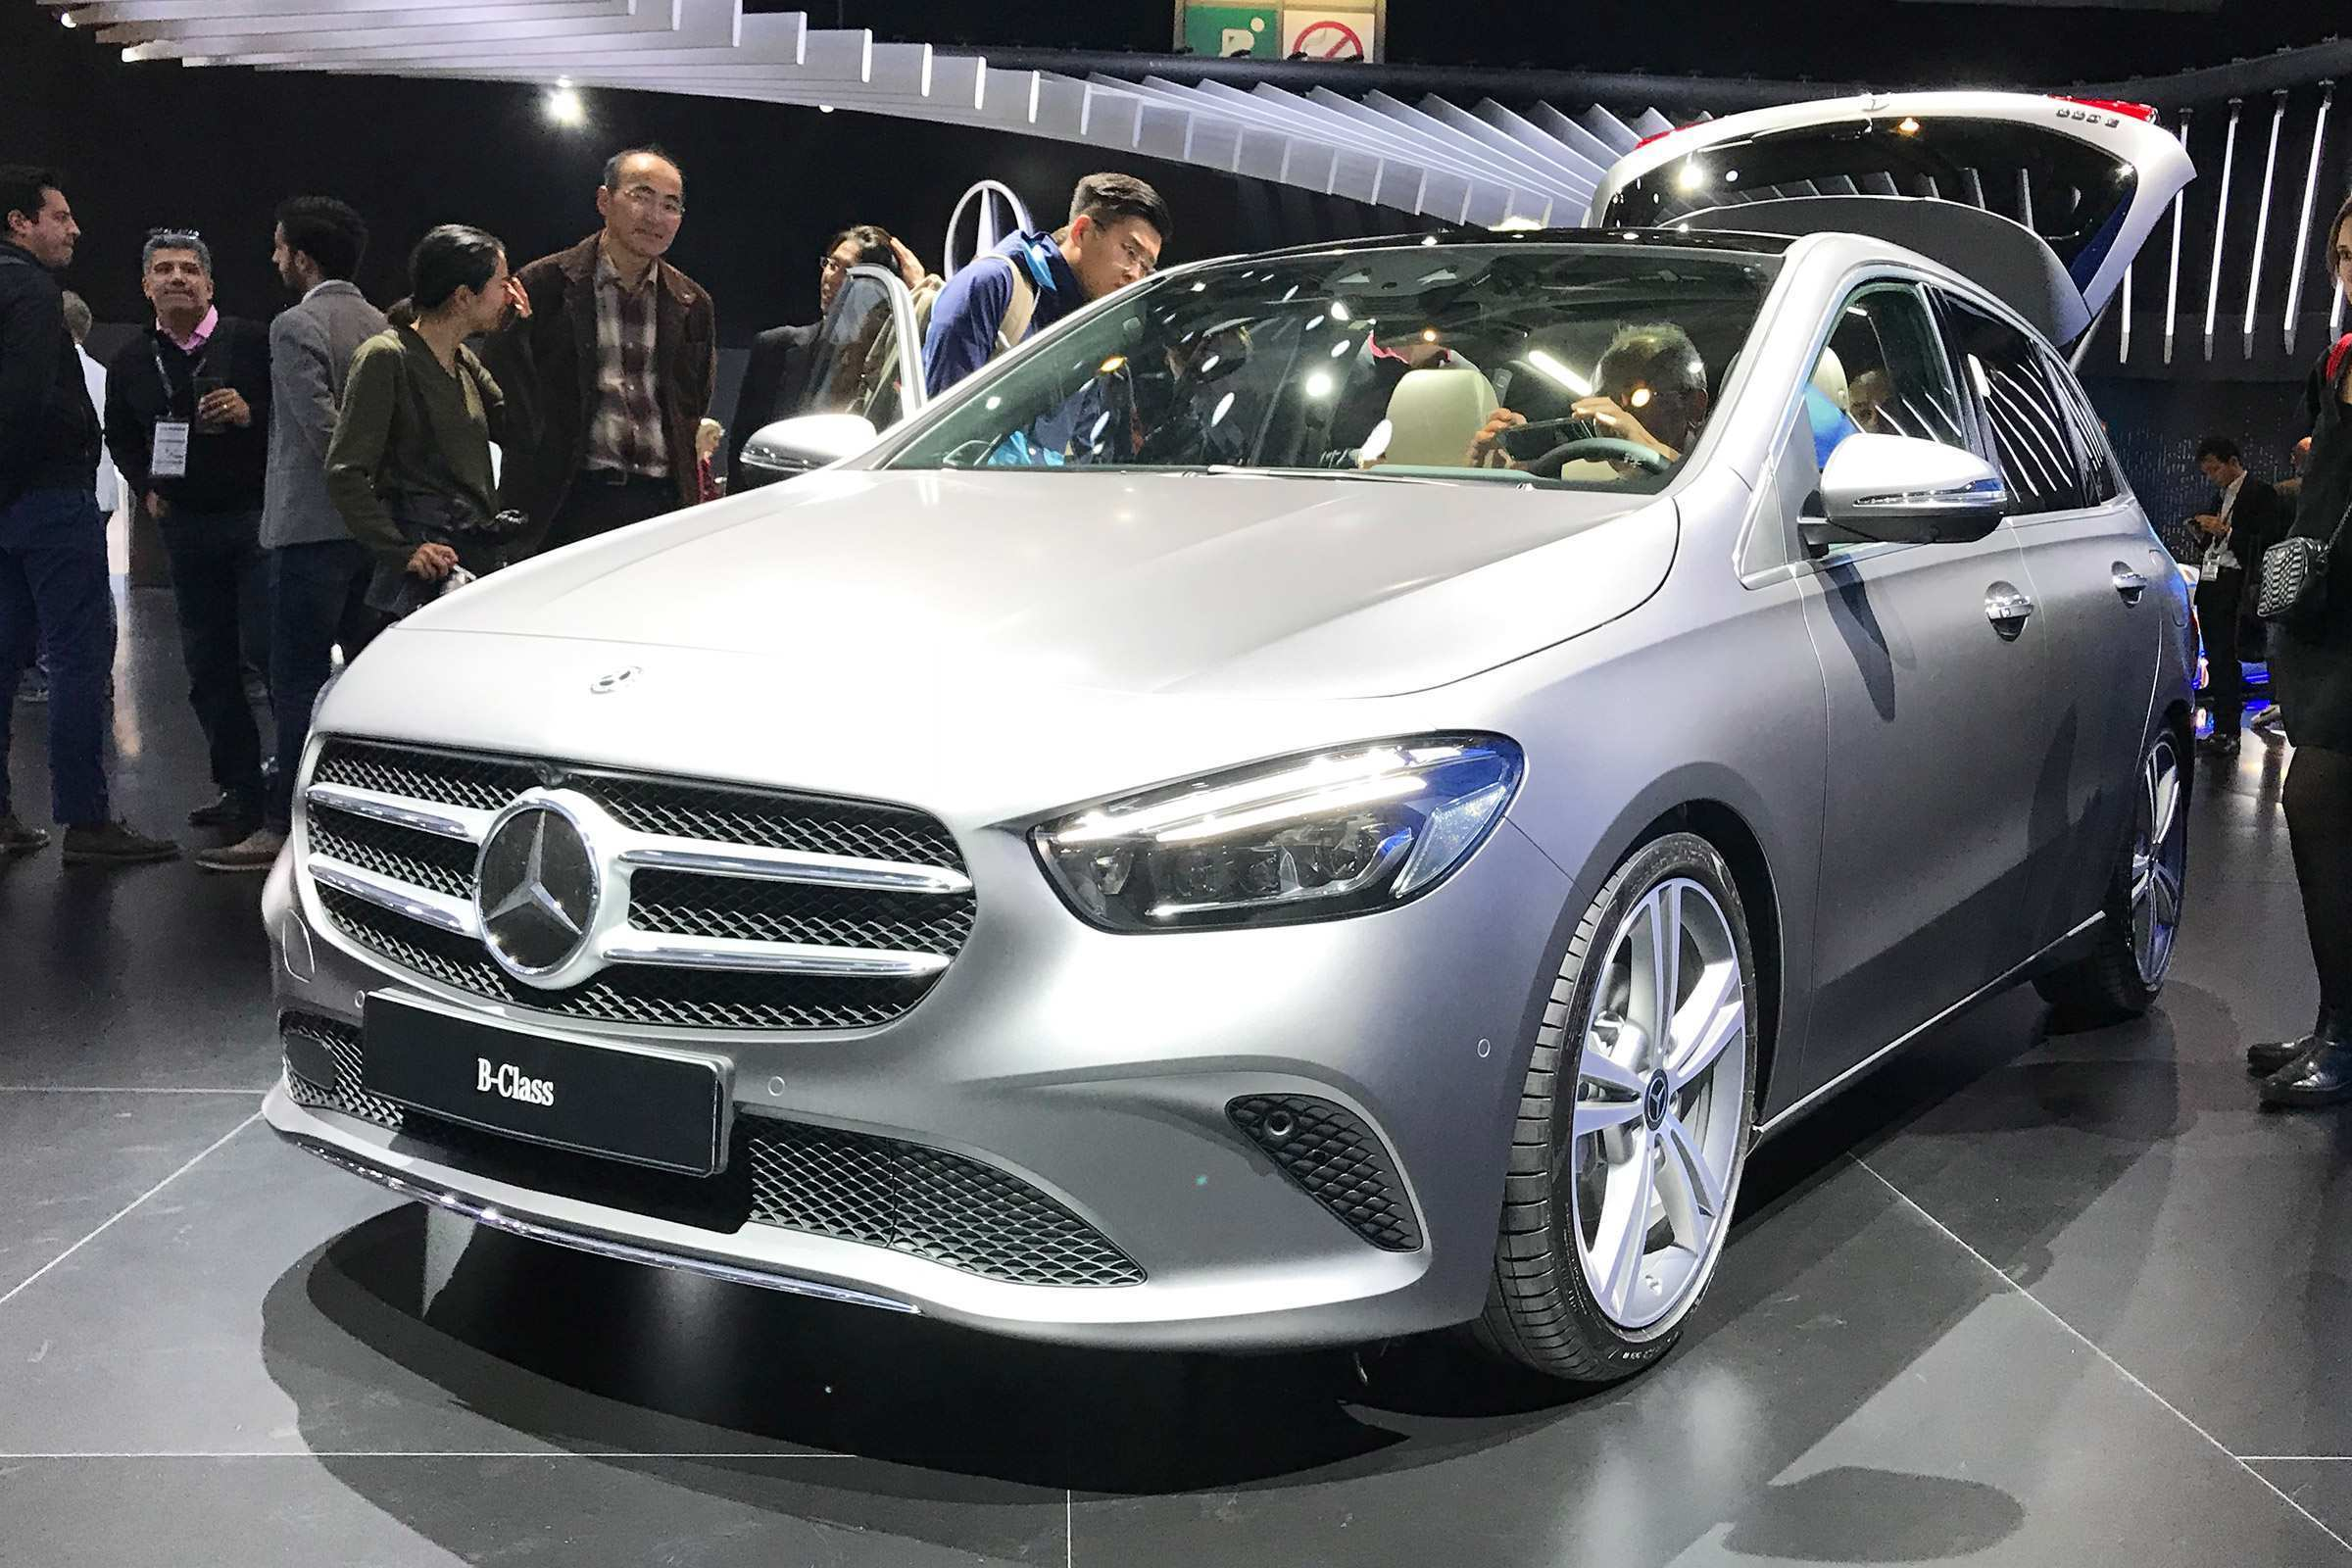 95 New New Electric Mercedes 2019 New Release Redesign and Concept for New Electric Mercedes 2019 New Release